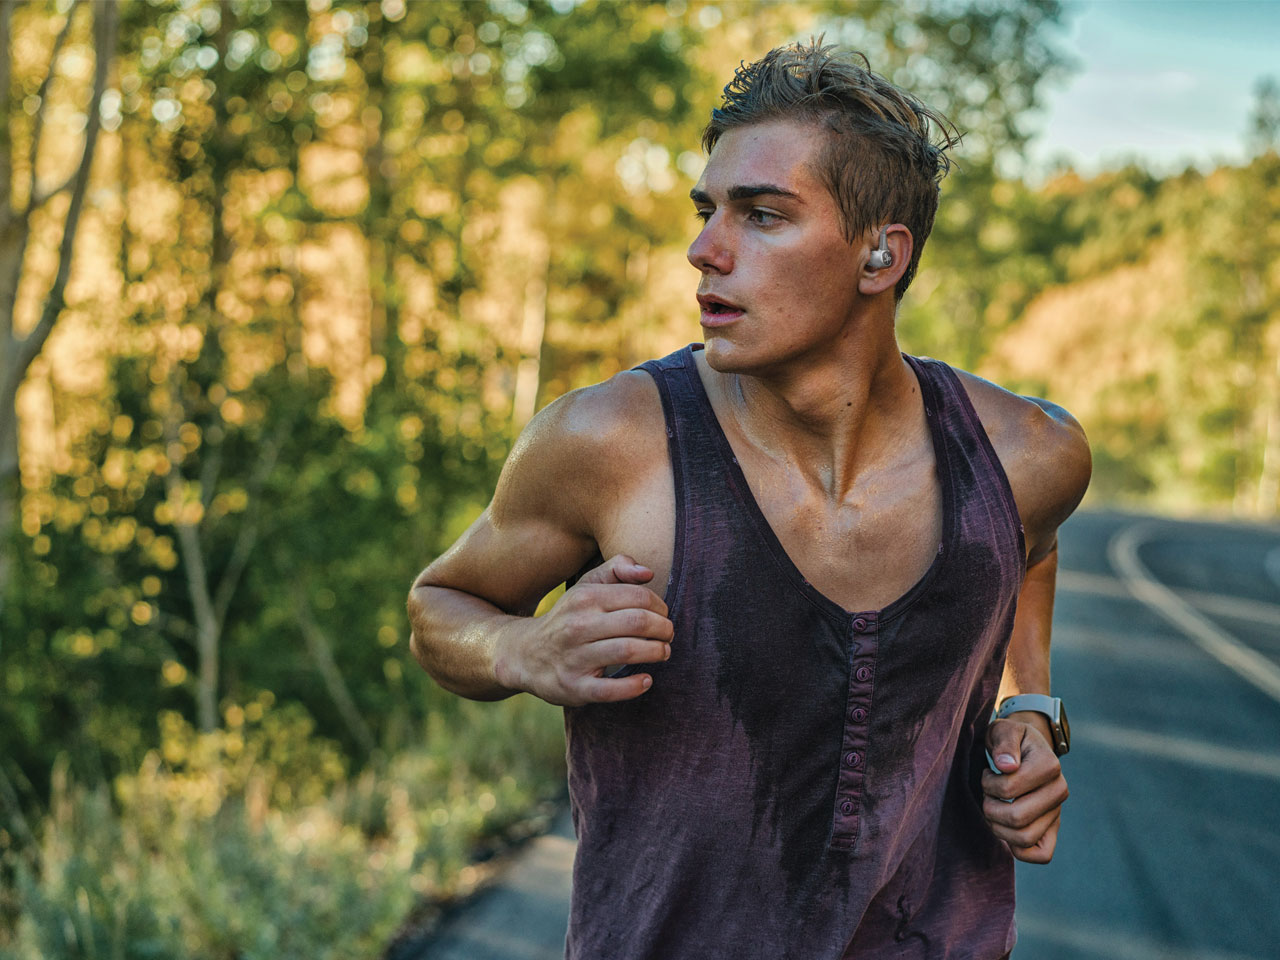 15 Best and Worst Wireless Workout Headphones